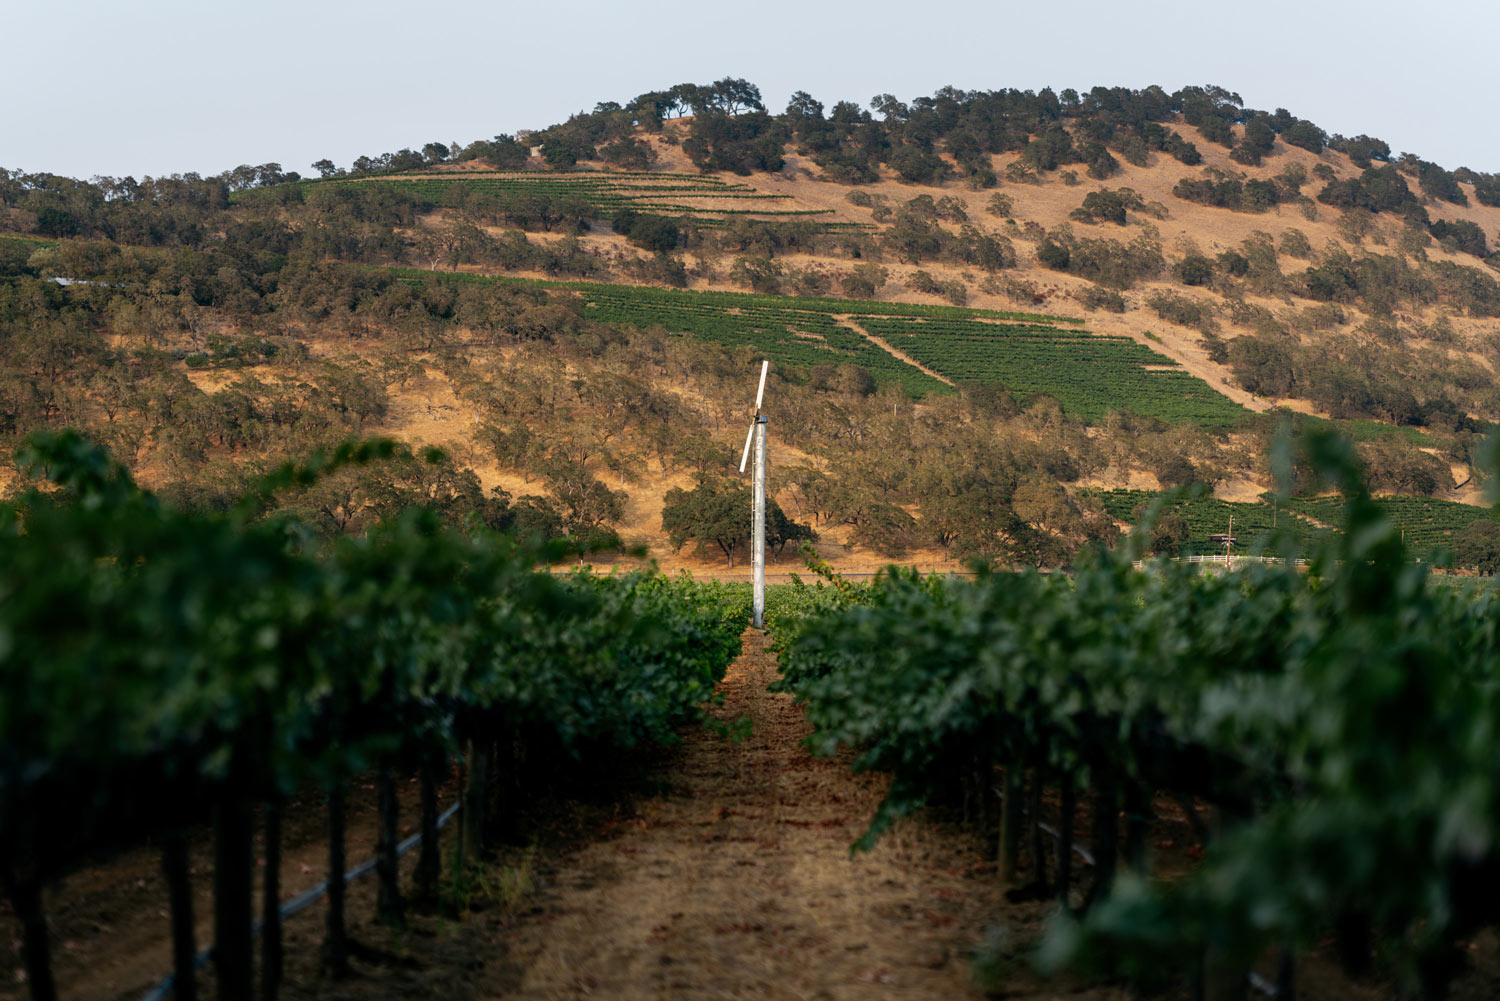 View of a wind fan in Trailside Vineyard